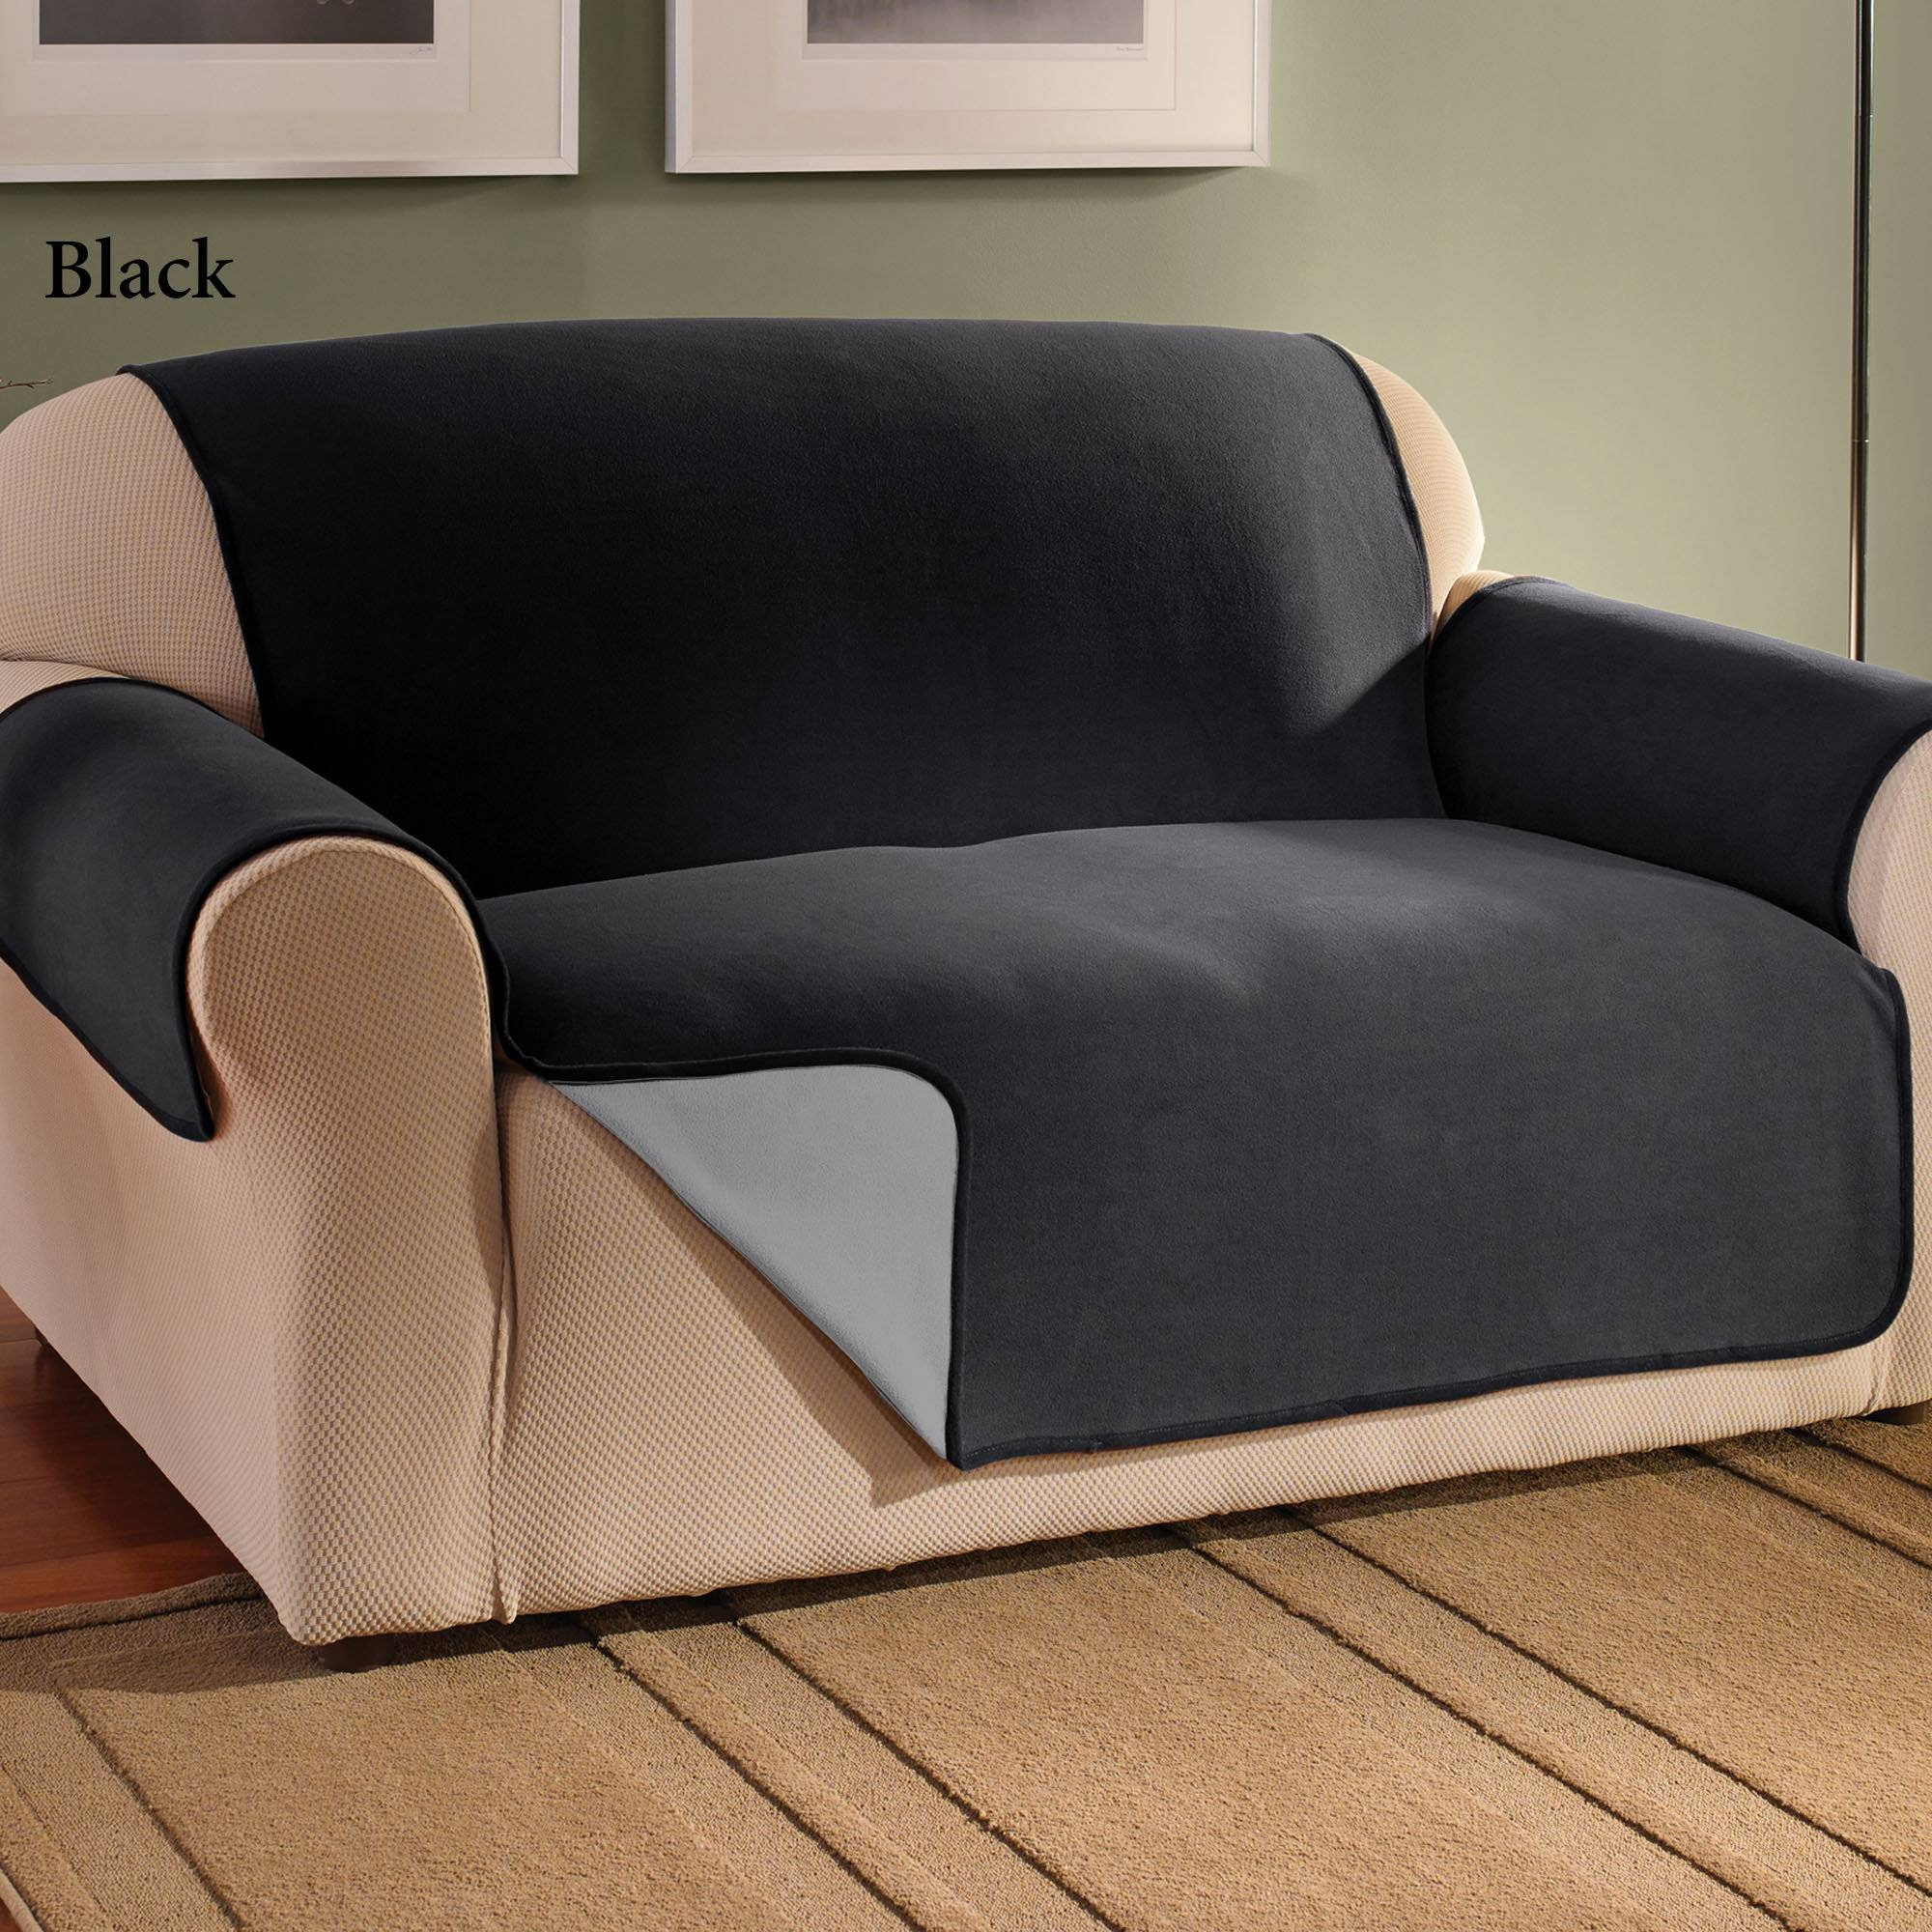 Furniture: Comfortable Cheap Couch Covers For Elegant Interior with regard to Sofa Settee Covers (Image 12 of 30)